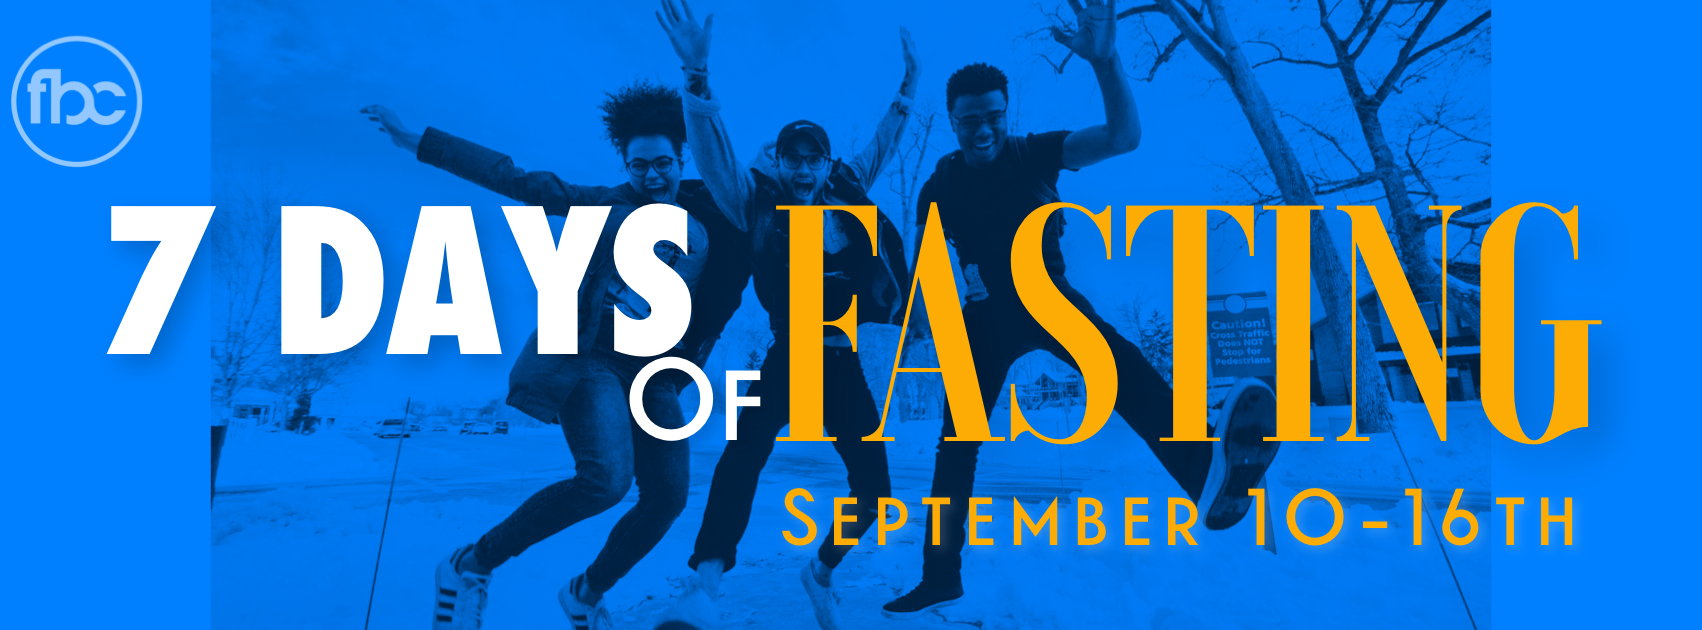 7 Days of Fasting - September 10th - 16th